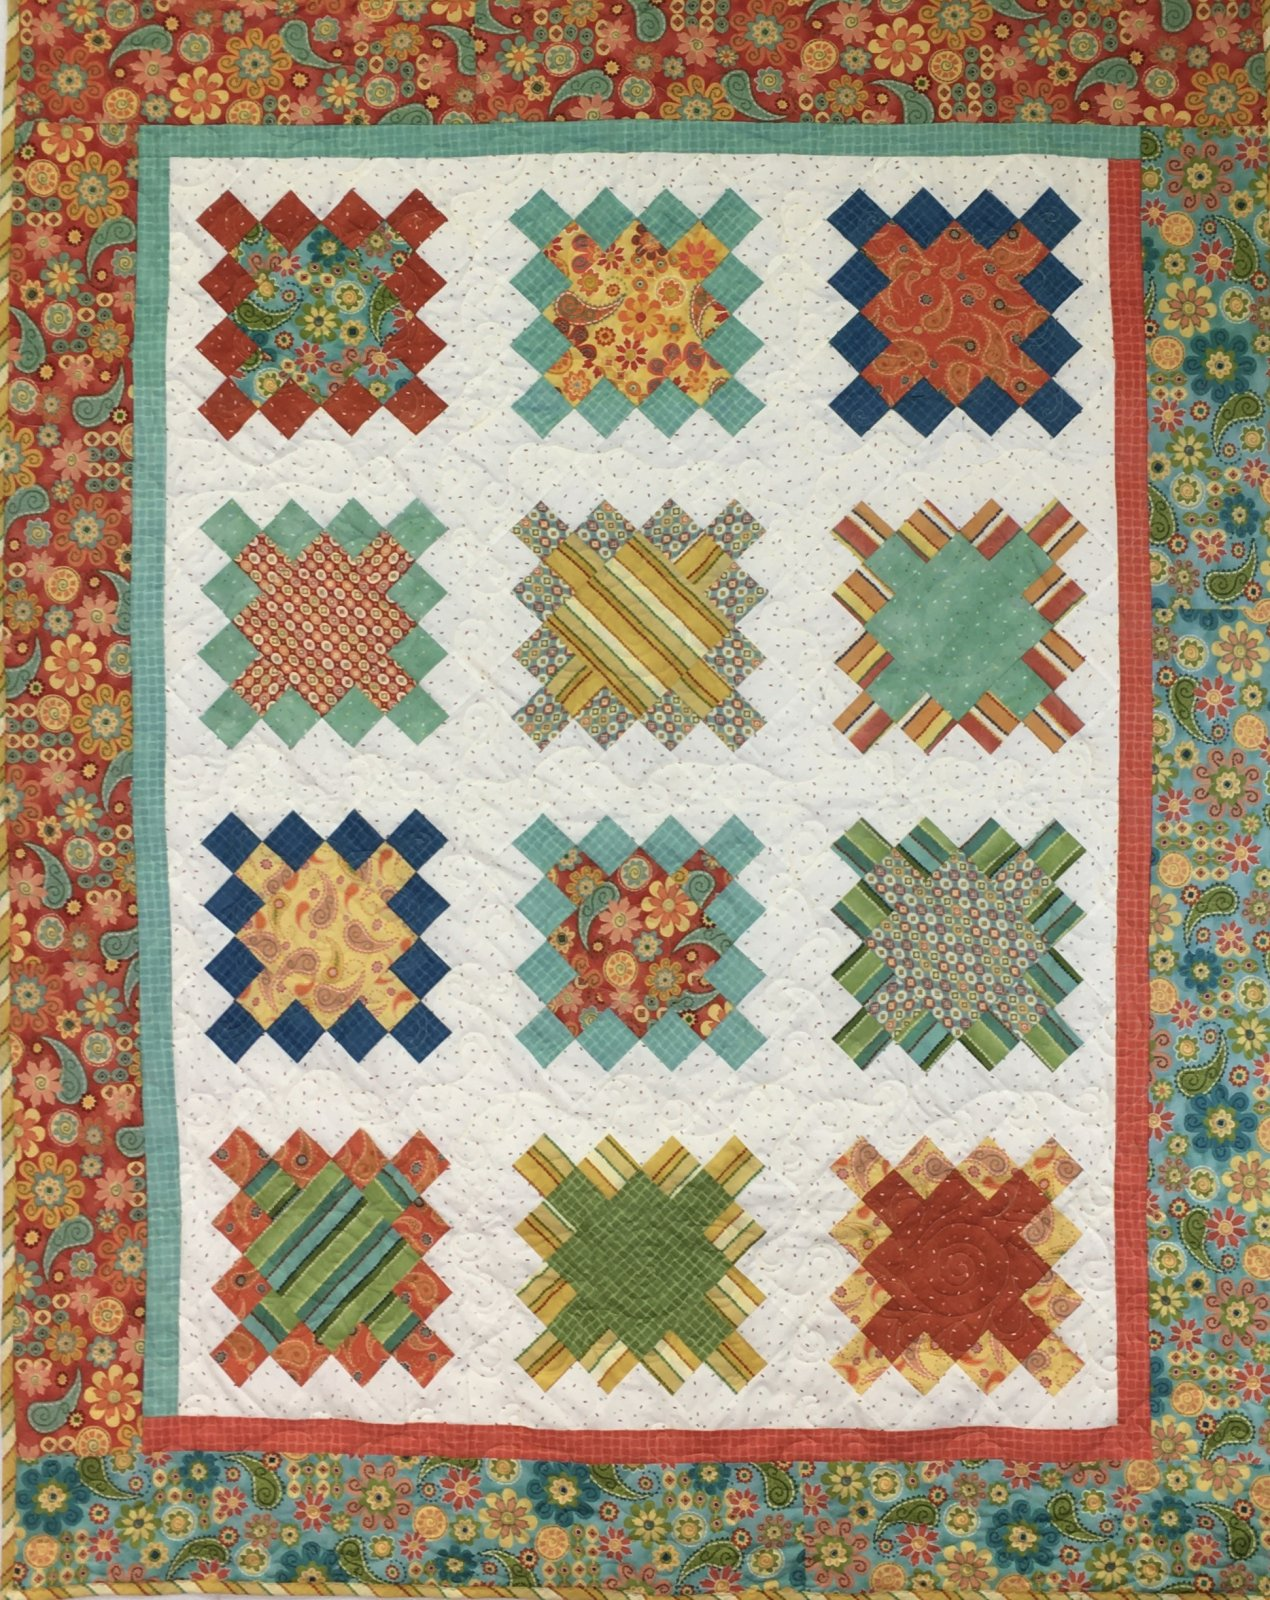 This Rocks Handmade Quilt